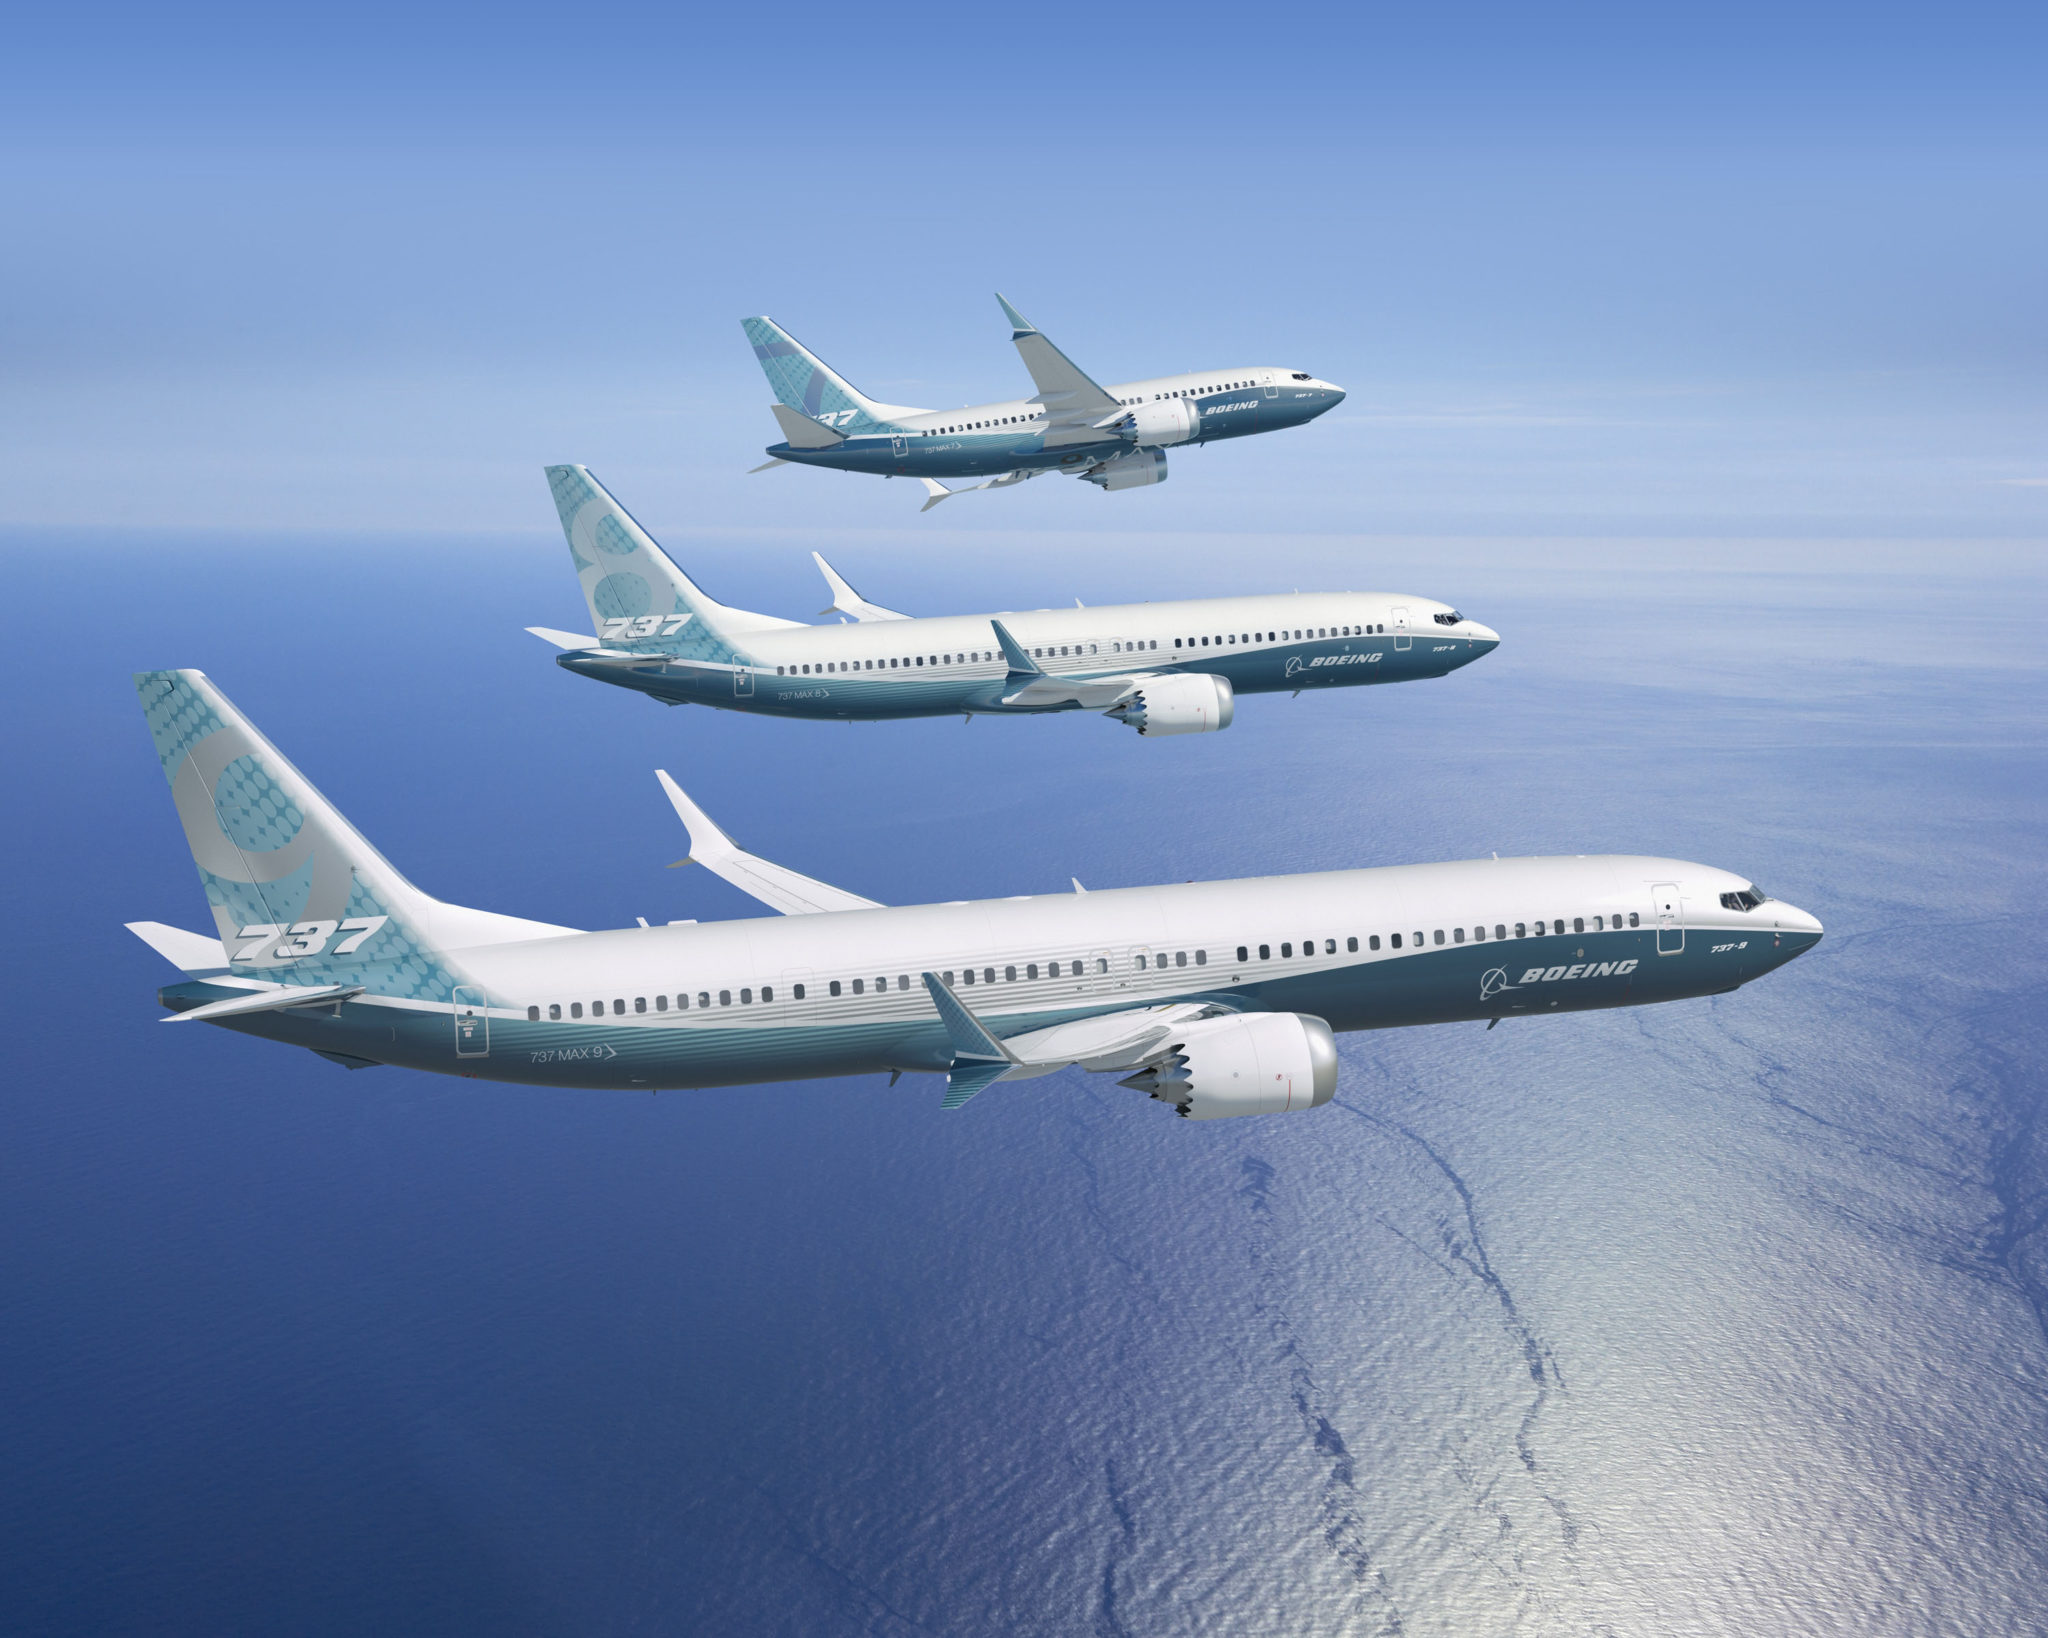 The smallest of Boeing's 737 family has grown, but the largest remains at a disadvantage. Image: Boeing